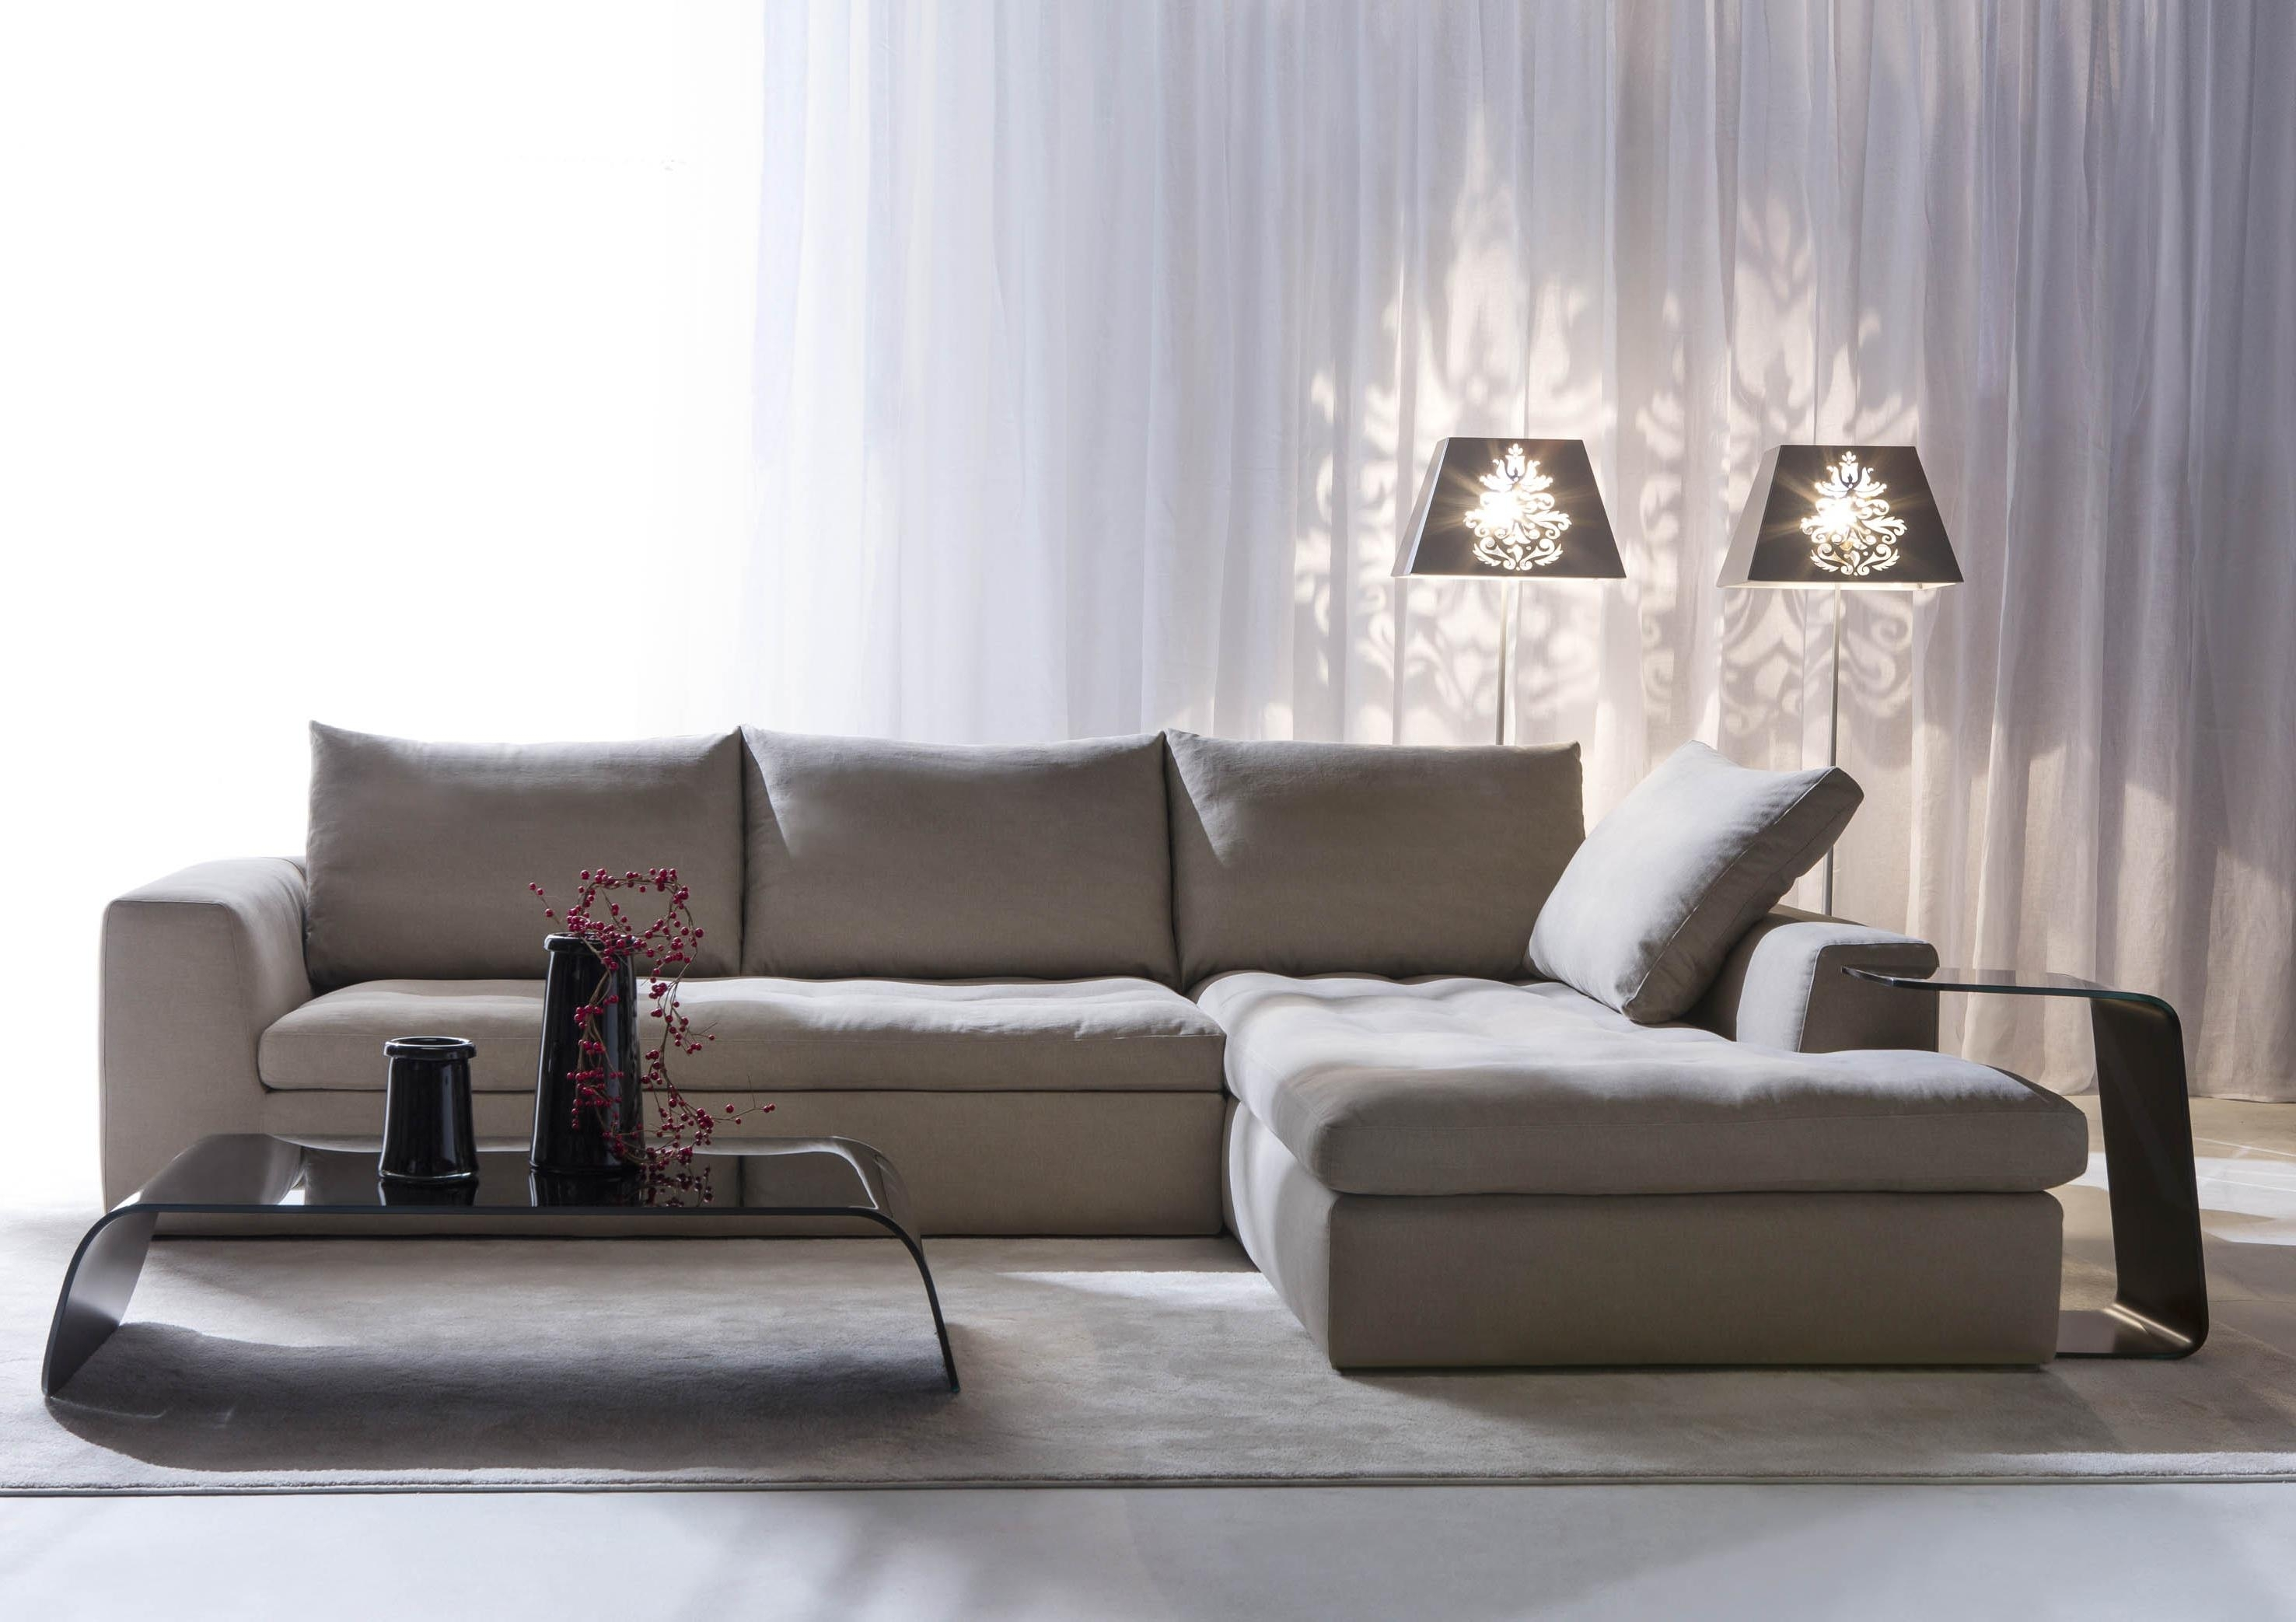 Sectional Sofa Design: Most High Class Wide Sectional Sofas Wide In Wide  Sectional Sofas (